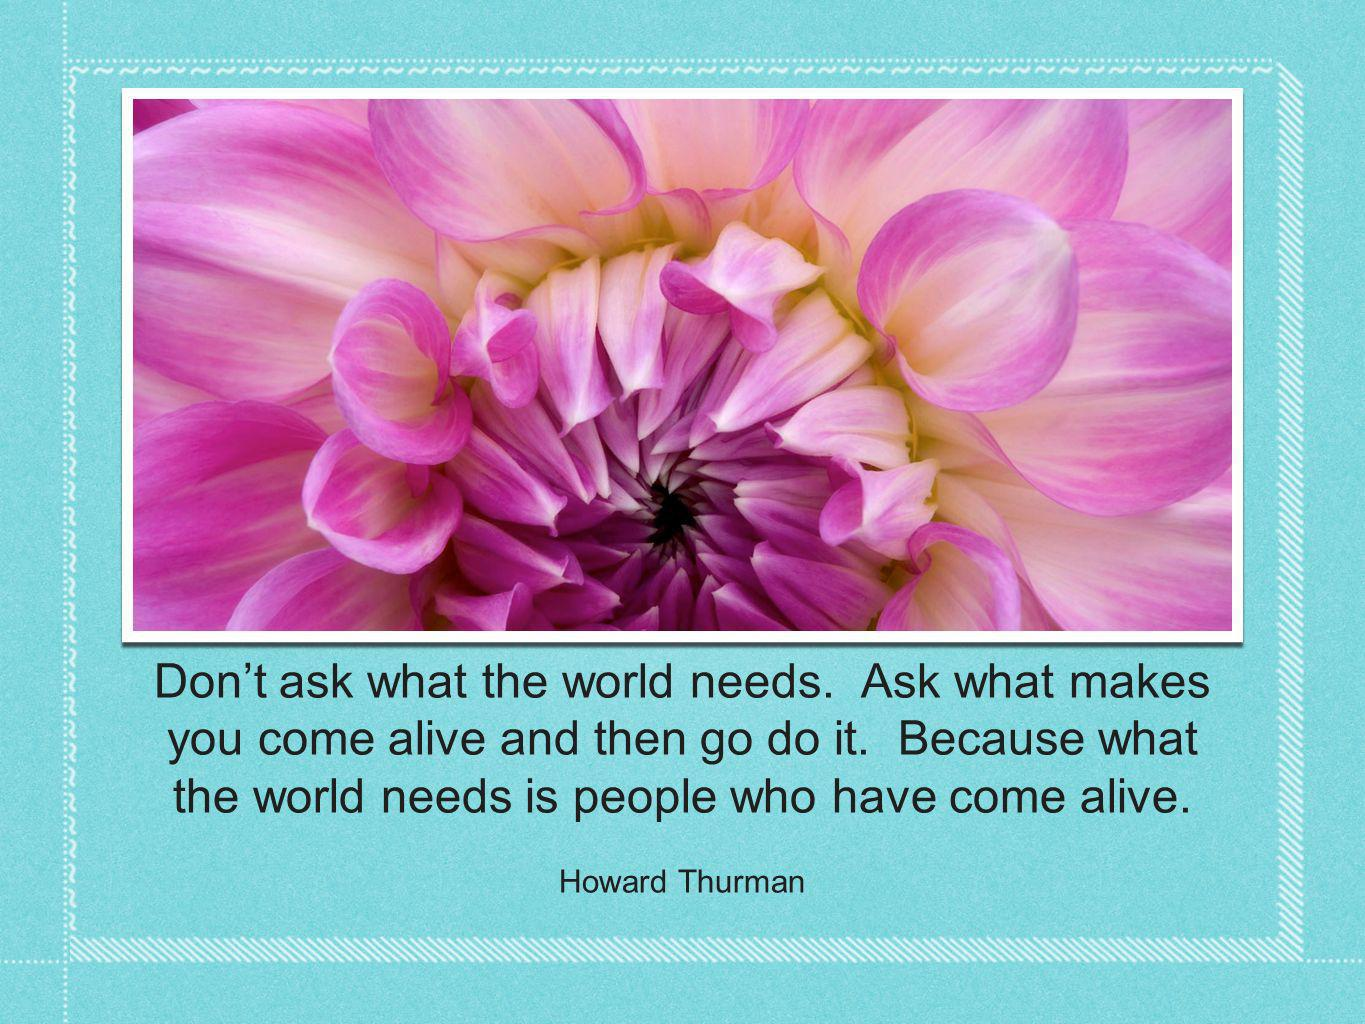 Dont ask what the world needs. Ask what makes you come alive and then go do it.